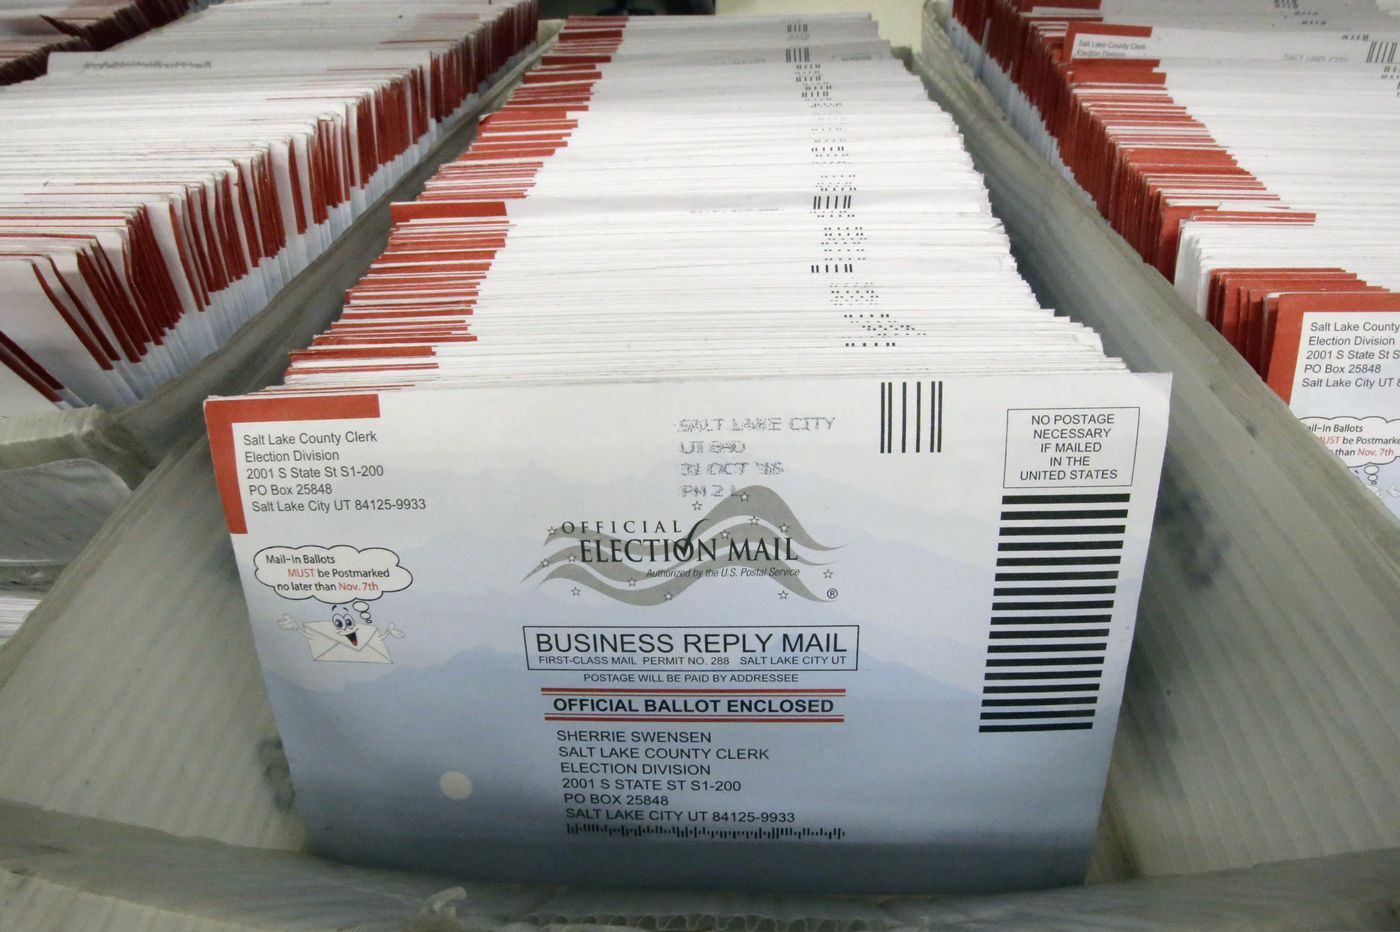 A key Democratic group is suing to ease Pennsylvania's vote-by-mail laws